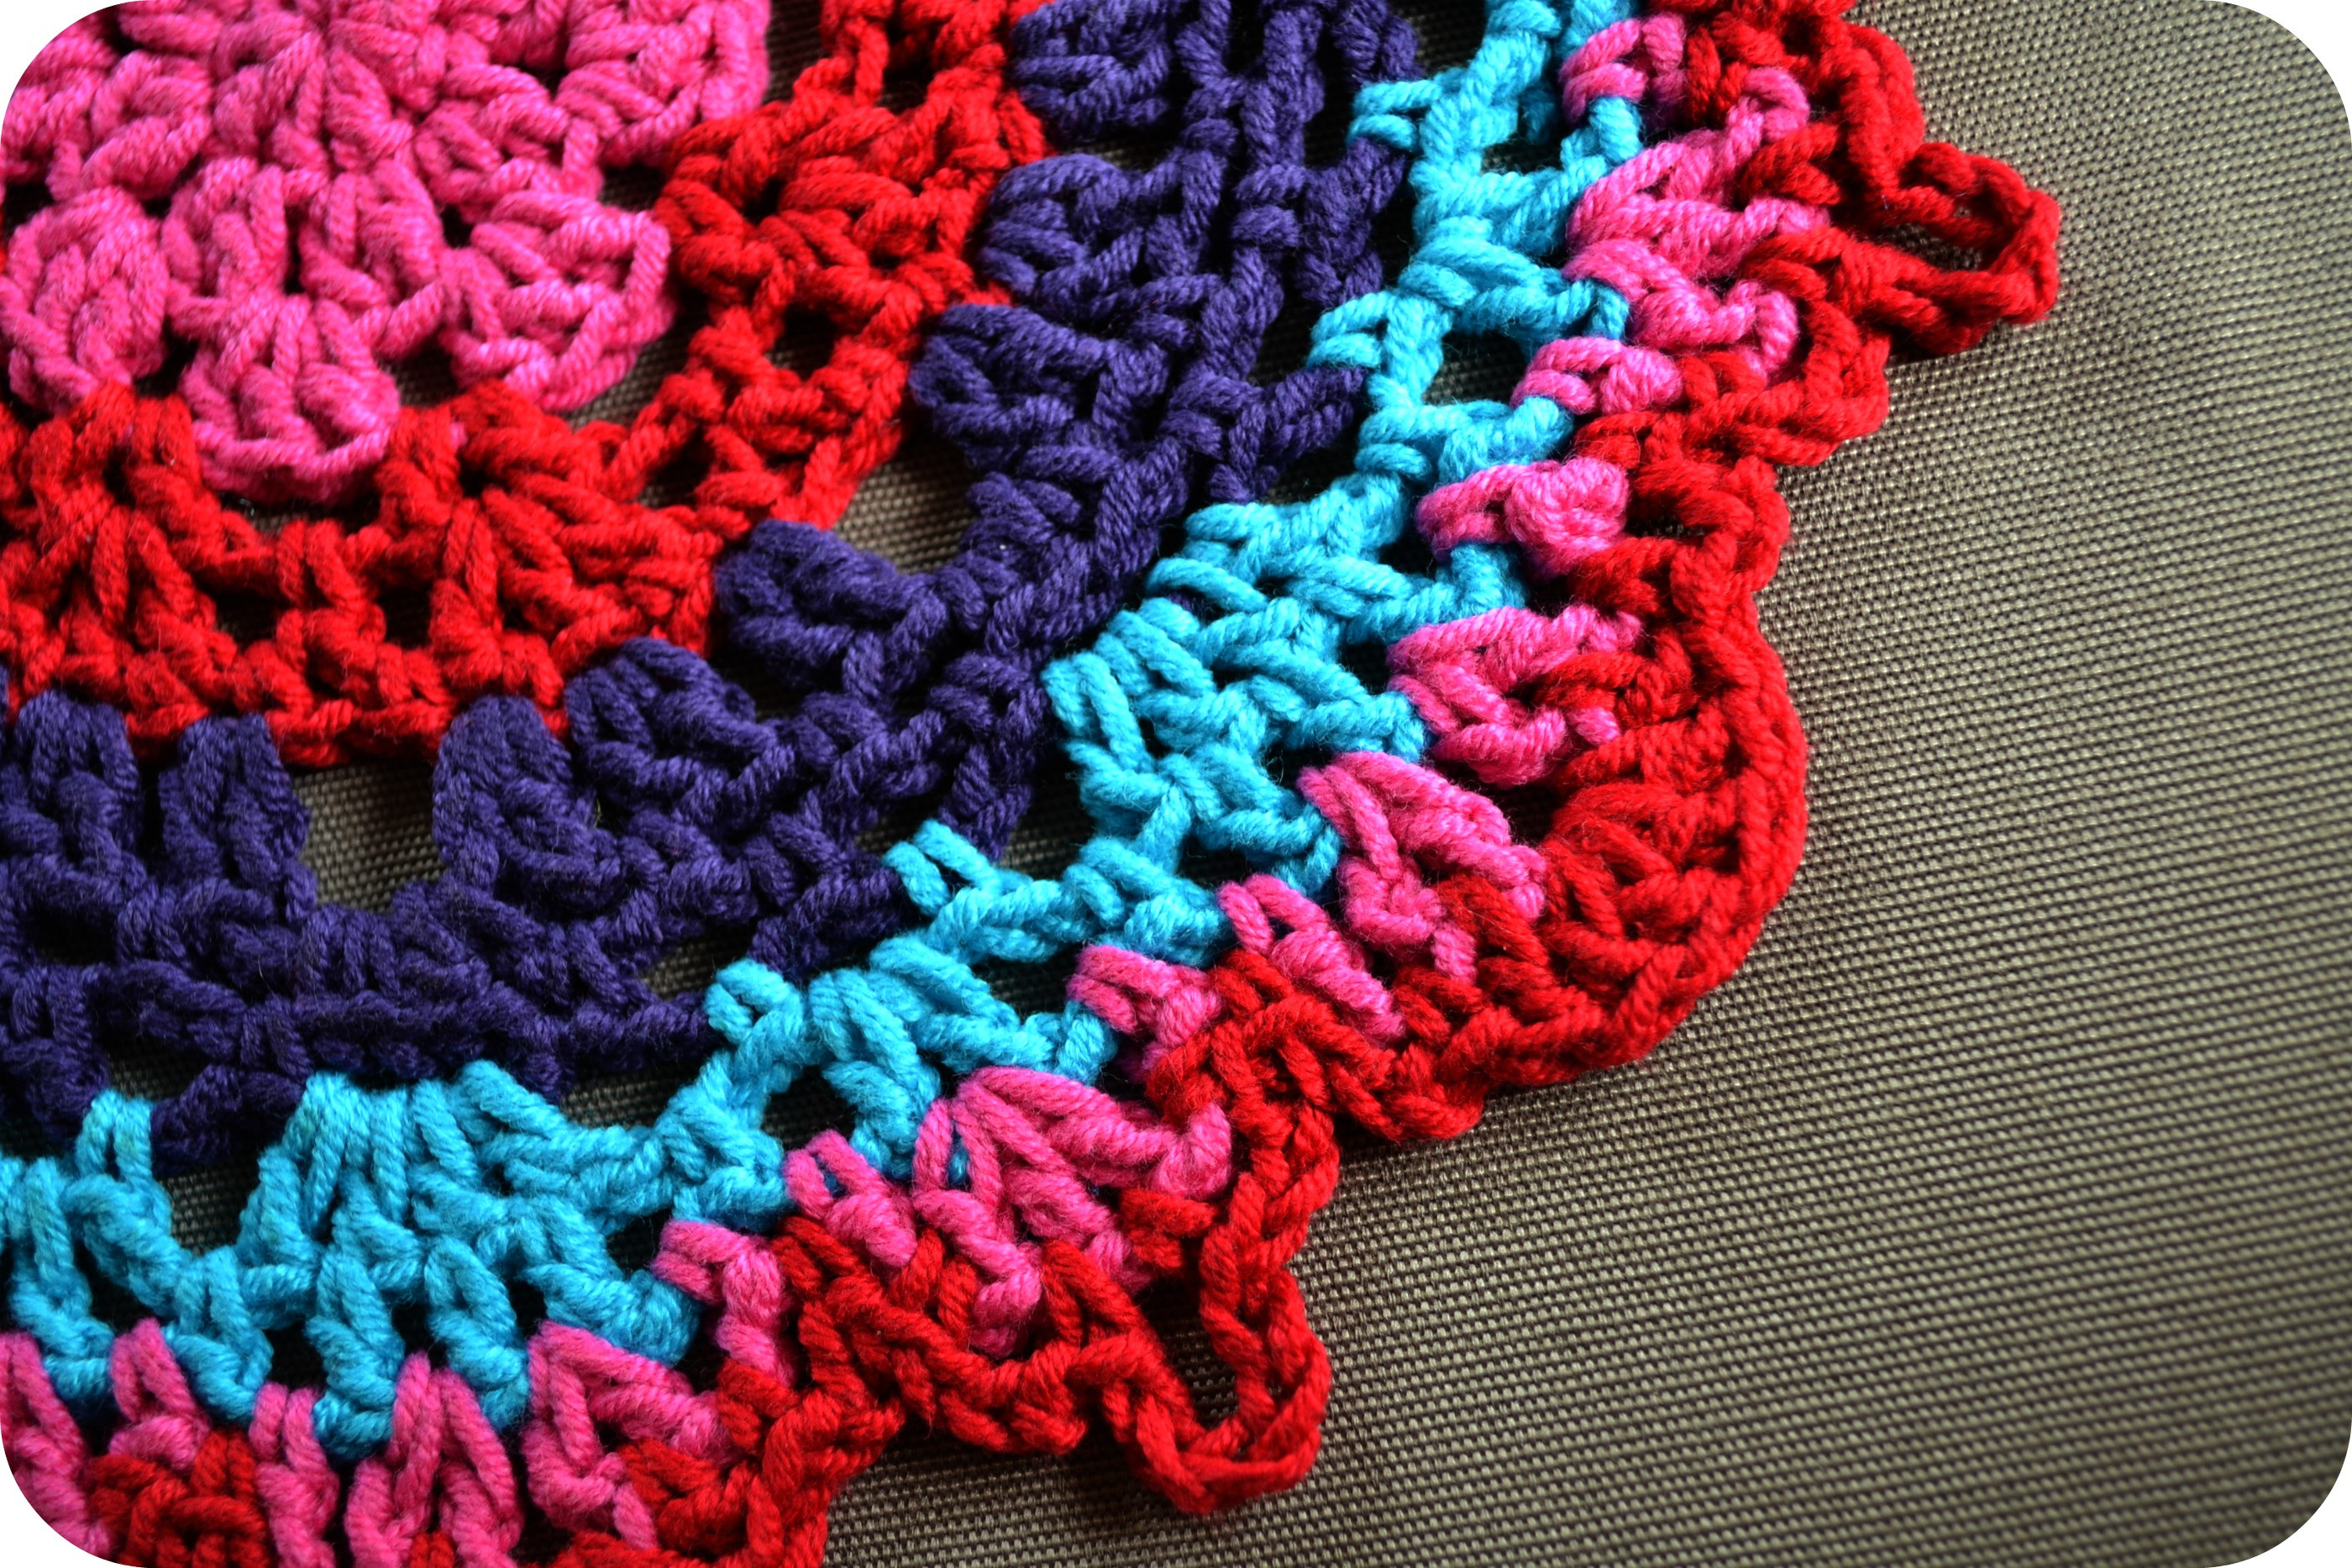 Free Doily Patterns Awesome Free Crochet Doily Patterns with Yarn Dancox for Of Adorable 43 Pictures Free Doily Patterns